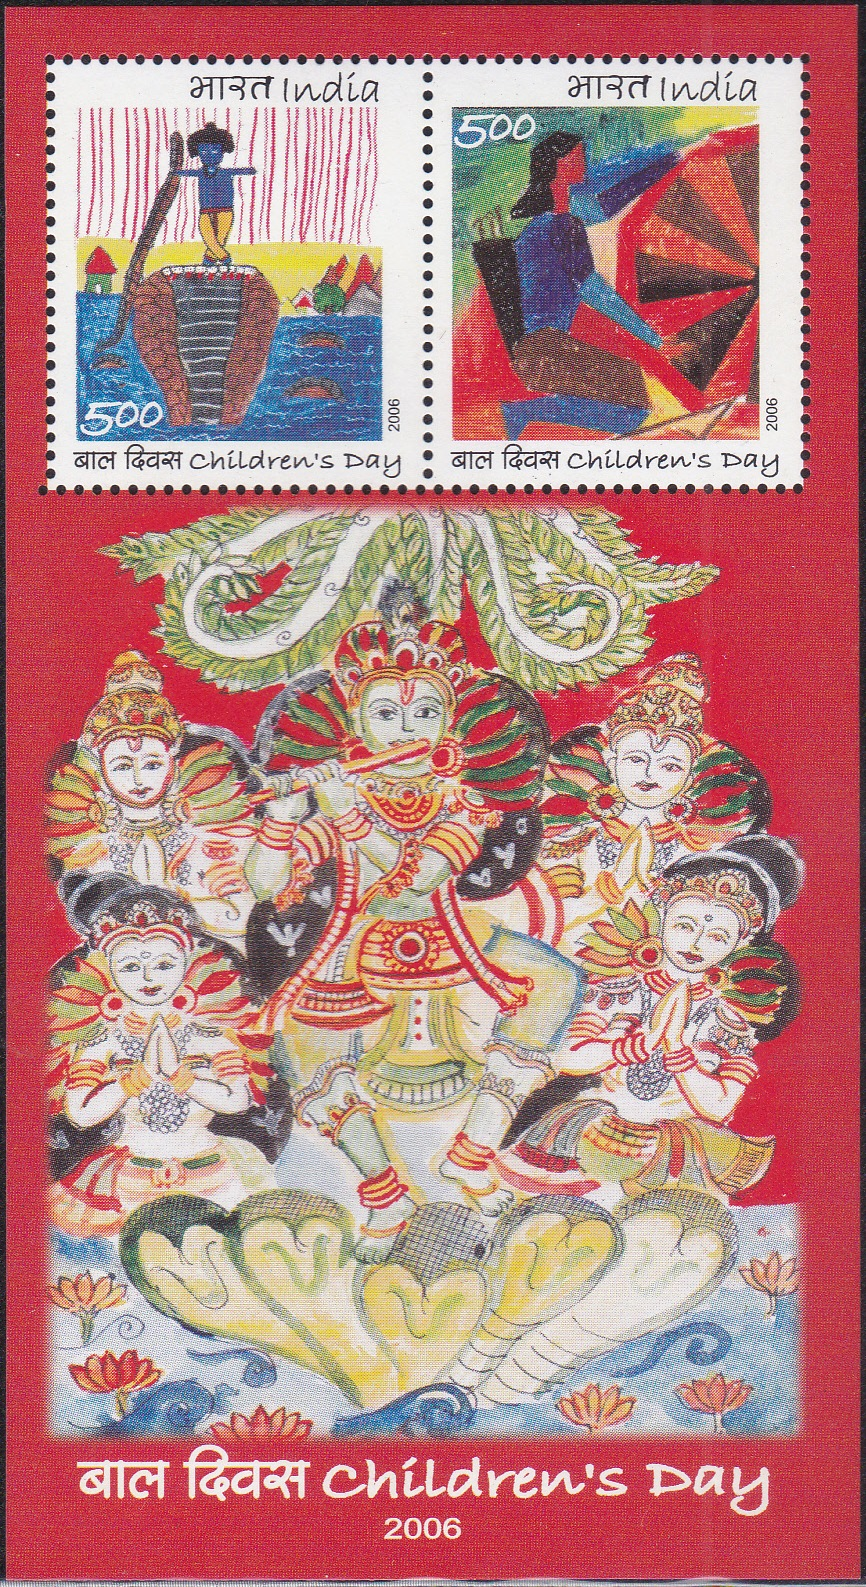 2226 Children's Day [India Souvenior Sheet of 2 stamps 2006]